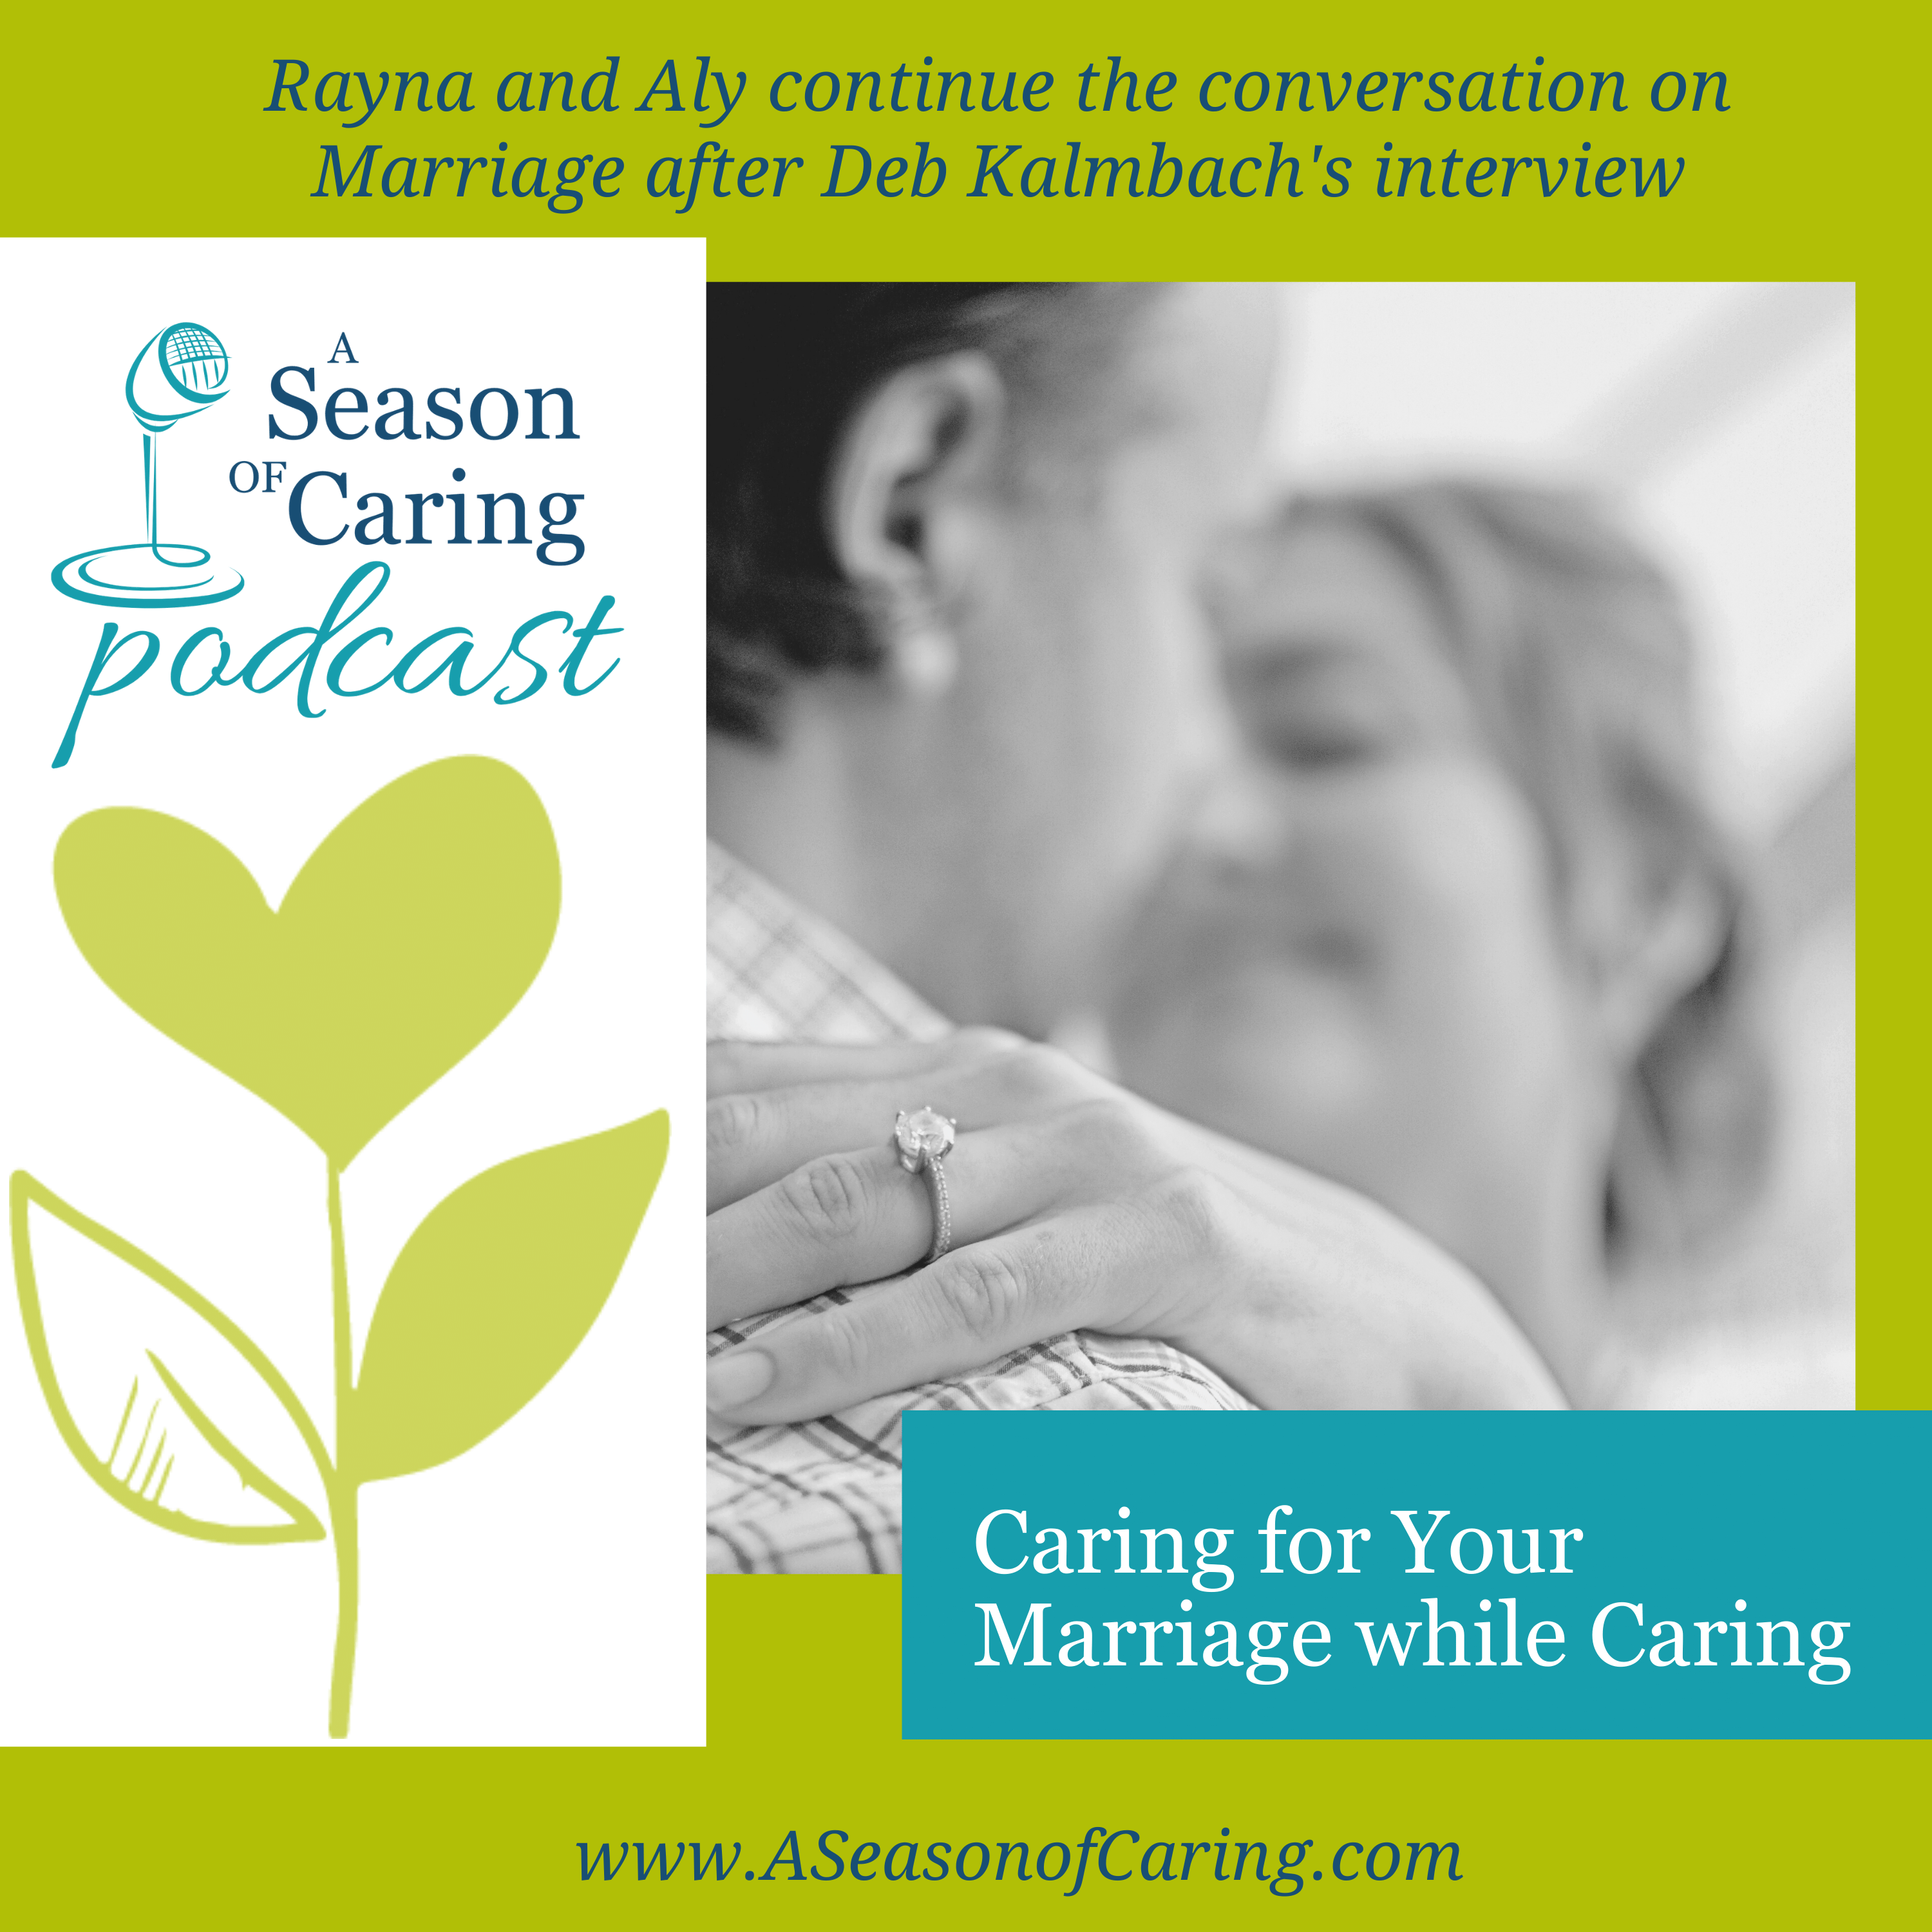 Caring for Your Marriage While Caregiving